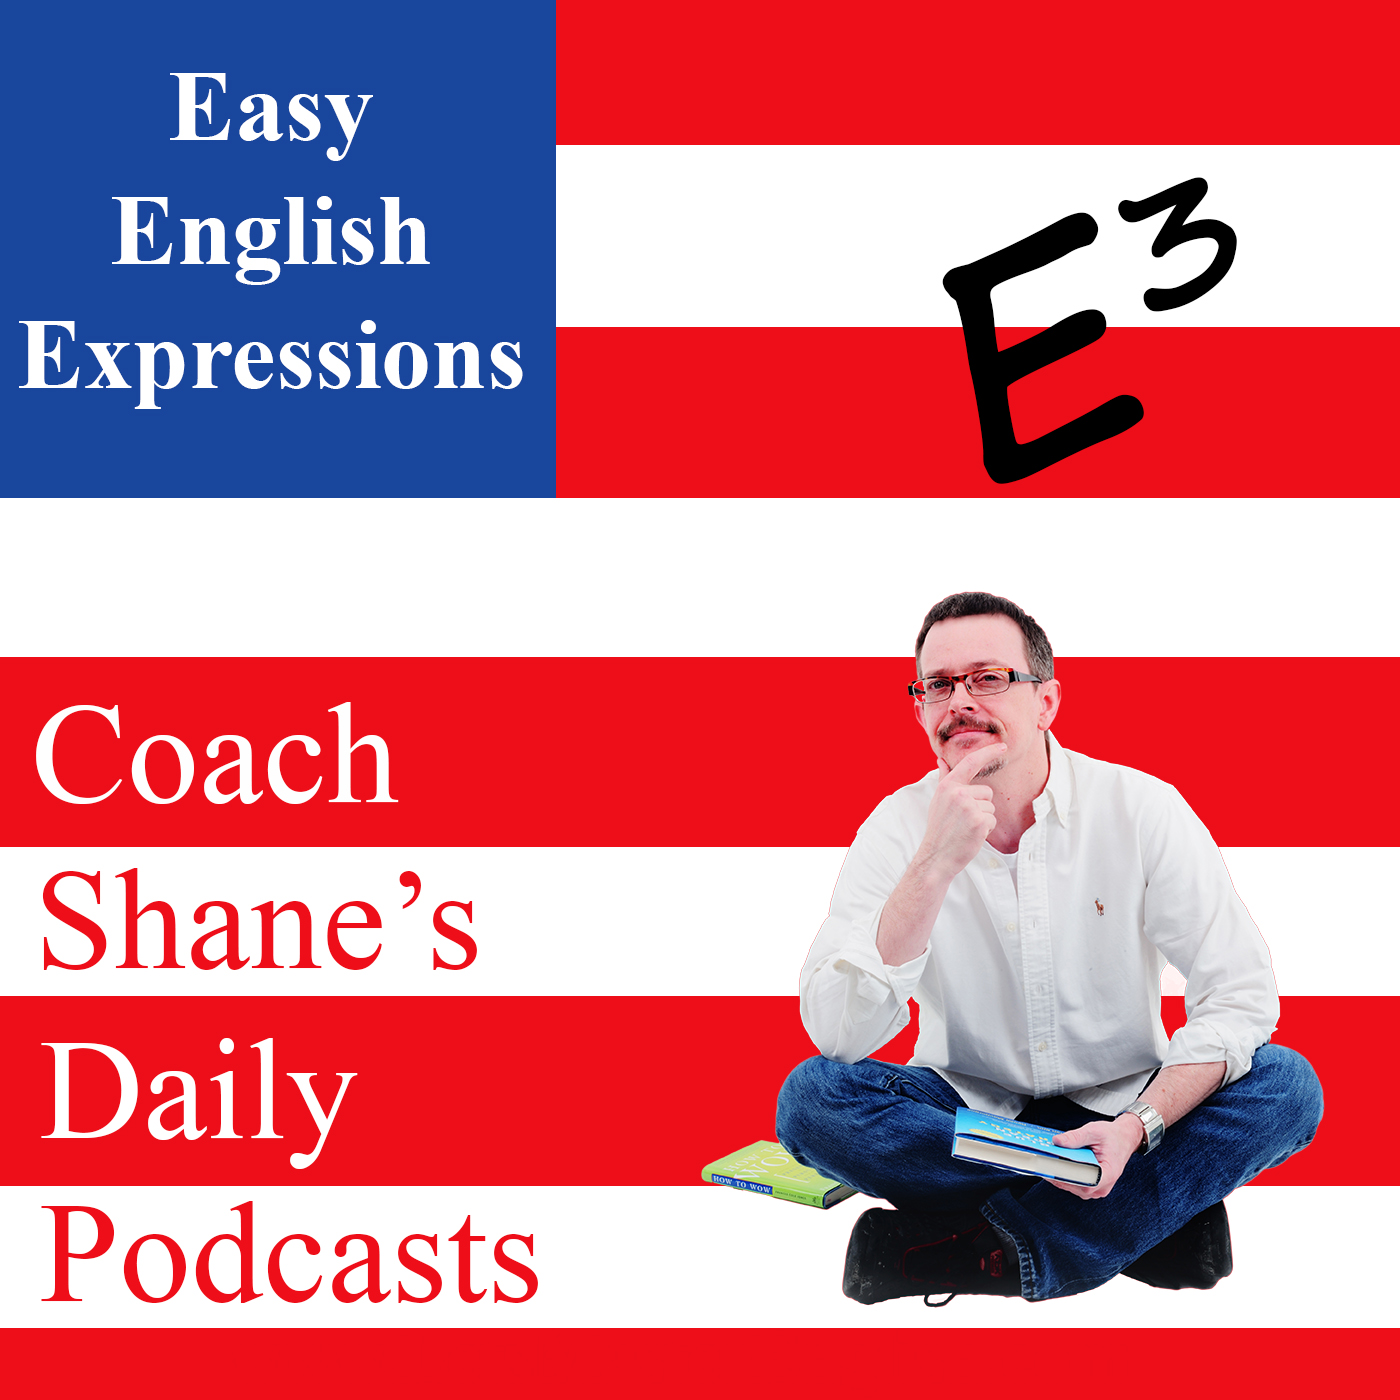 76 Daily Easy English Expression PODCAST—I changed my mind.